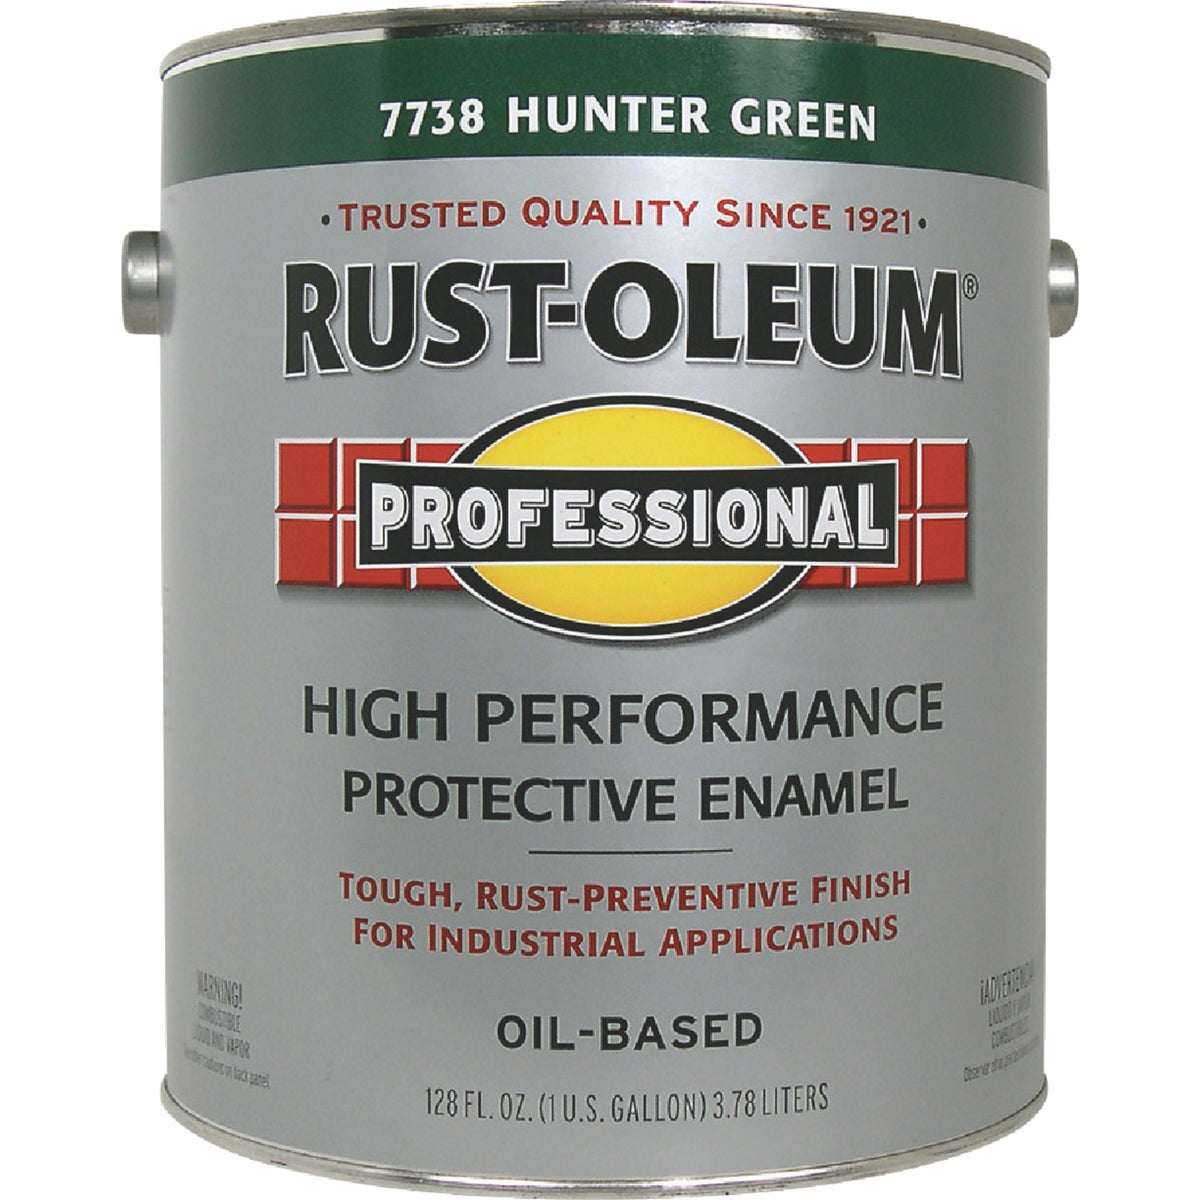 VOC HUNTER GREEN ENAMEL - K7738 by Rustoleum